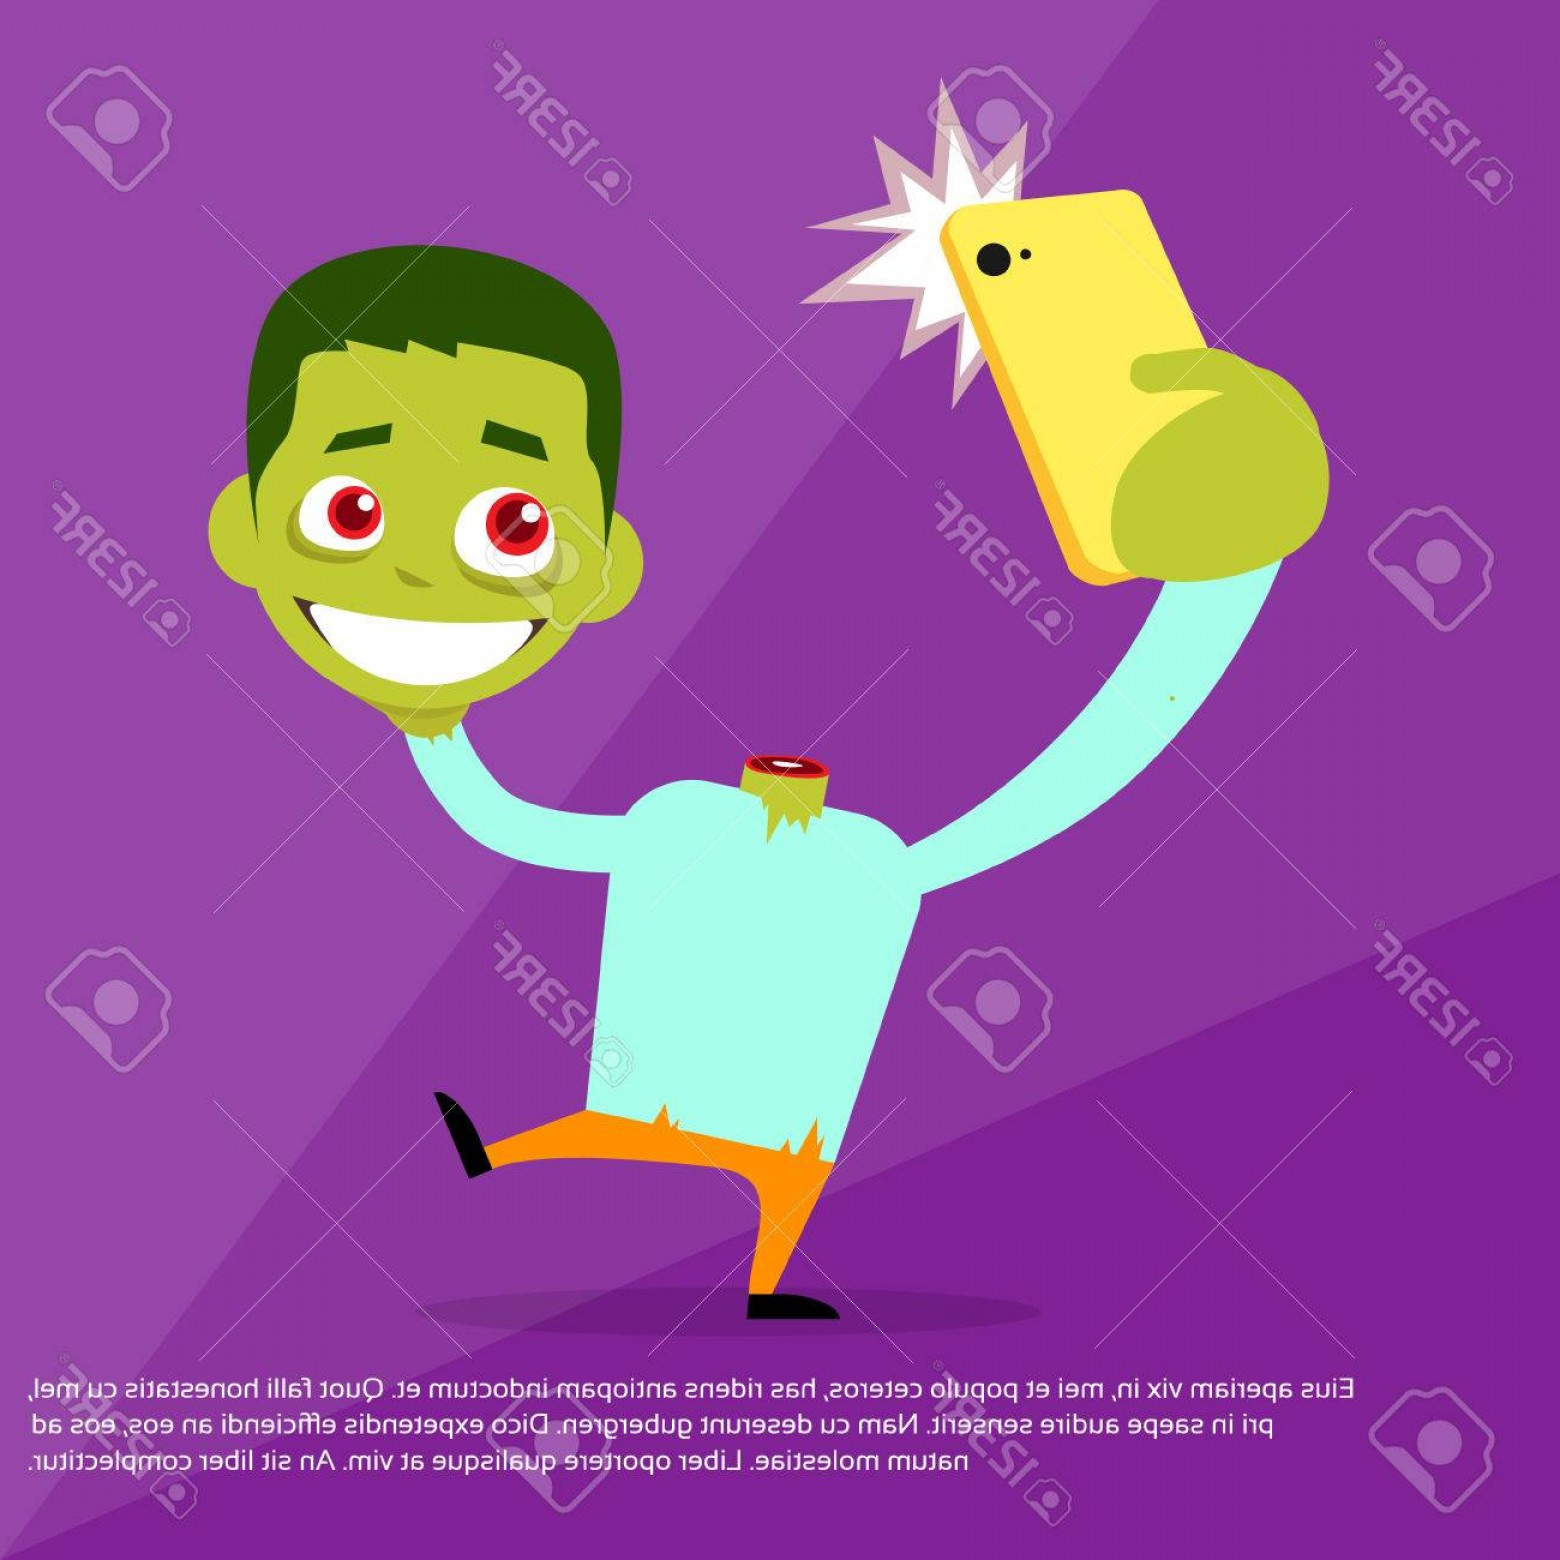 Headless Scary Halloween Skeletons Vectors: Photostock Vector Halloween Selfie Photo Zombie Headless Hold Head In Hand Smart Phone Scary Cartoon Character Smile F